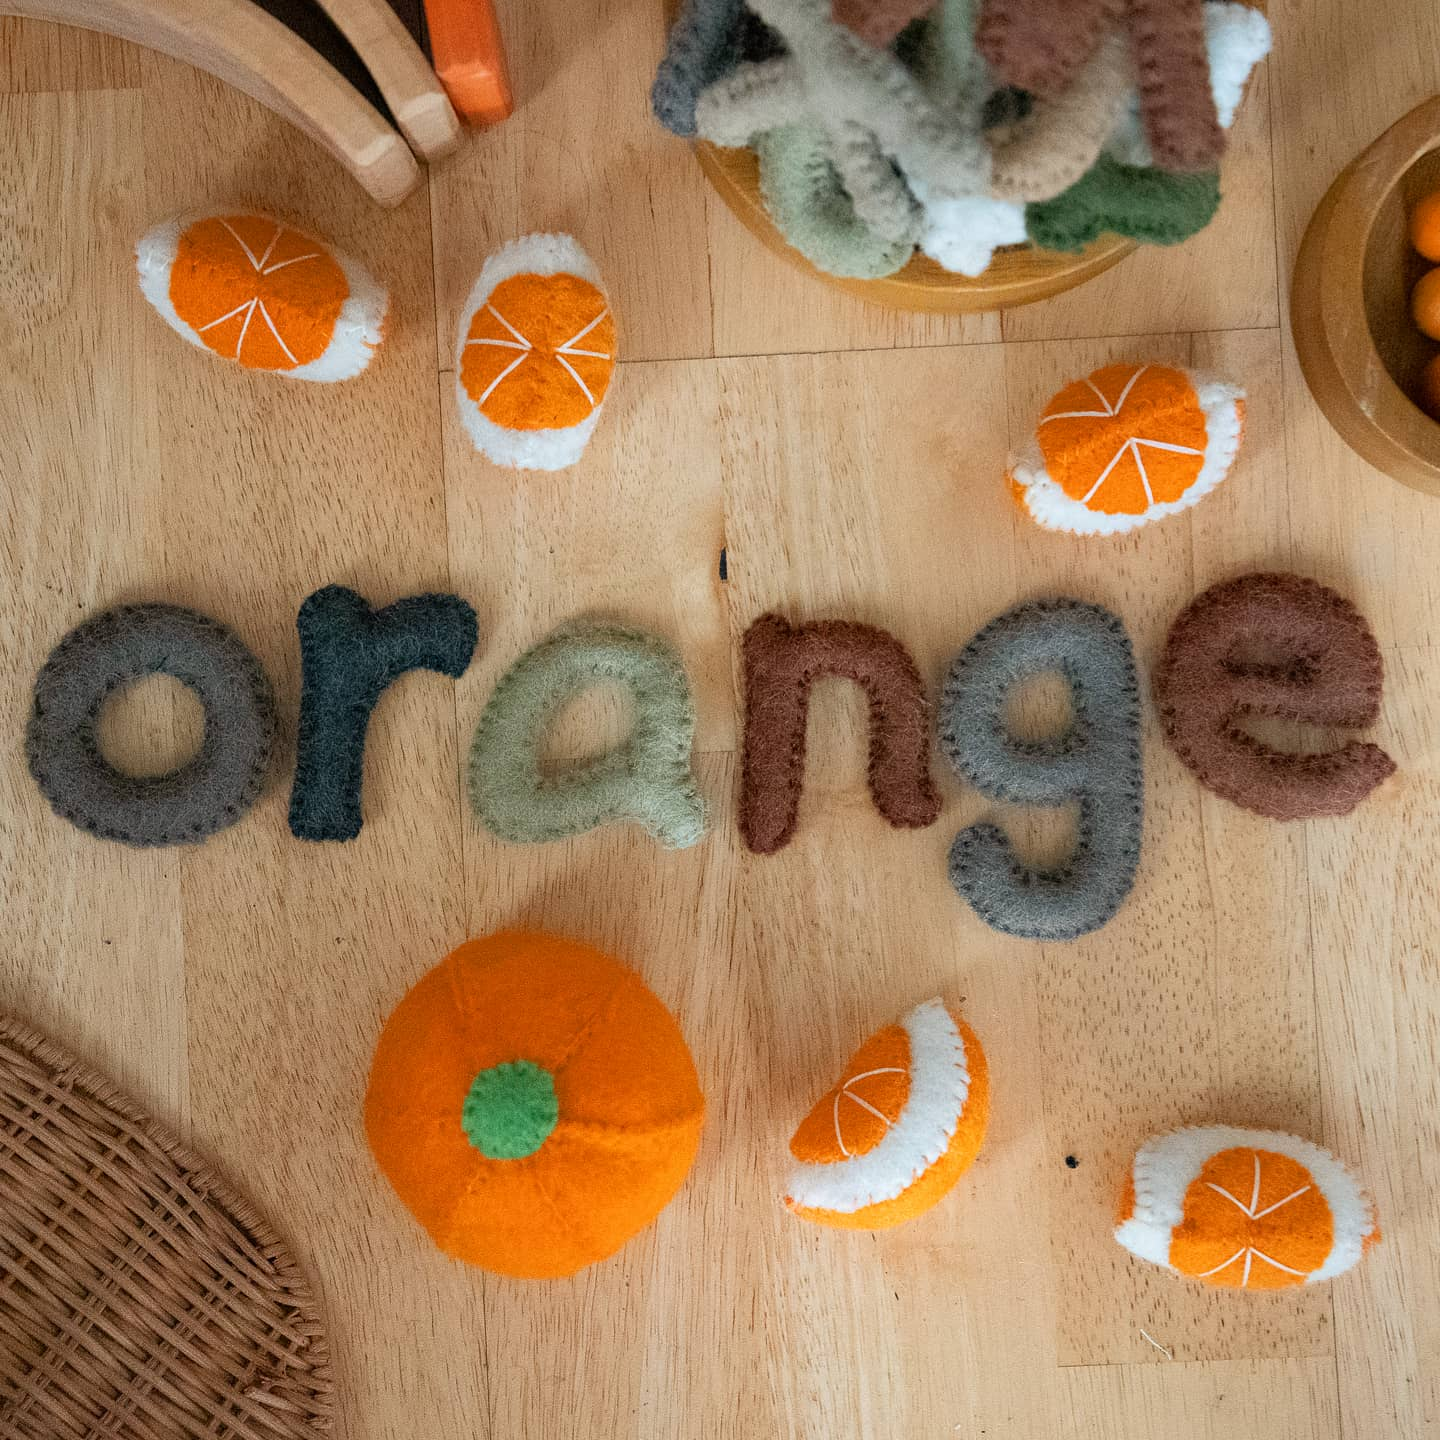 Papoose Fair Trade Felt Orange Slices (6 pieces)